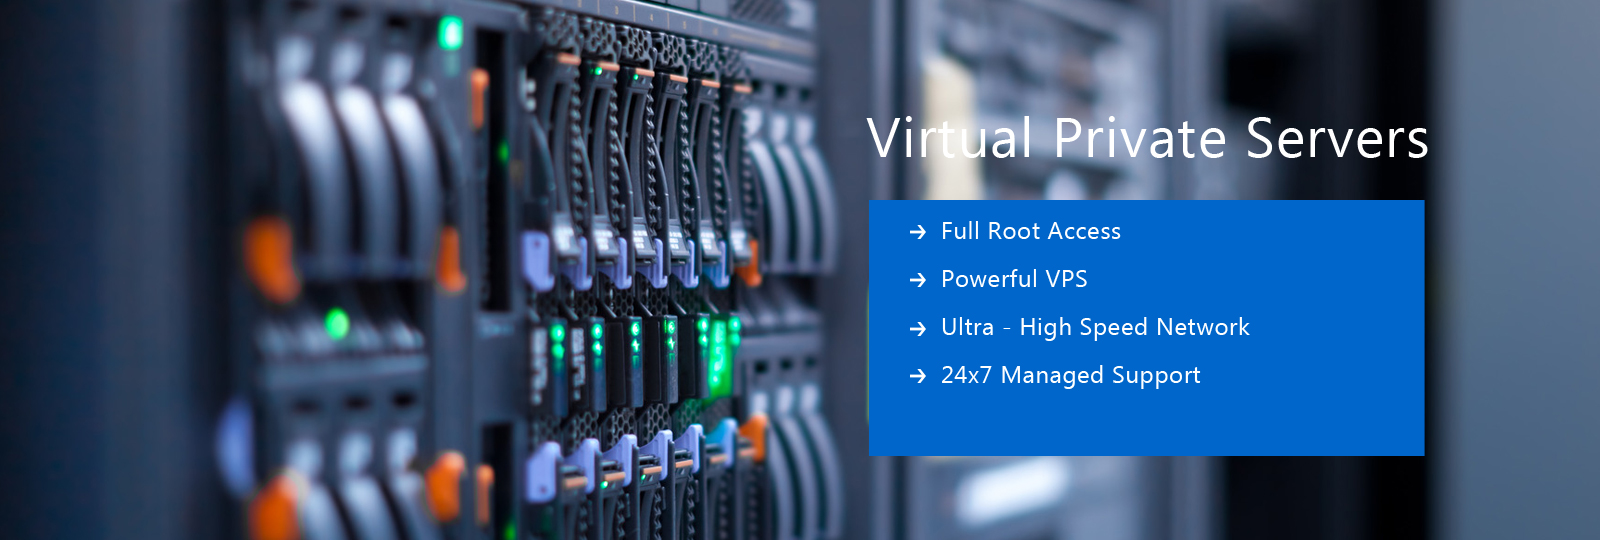 Provide cheap Windows VPS -High Performance for SEO Tool  - Jingling - 22hits - Hitleap...